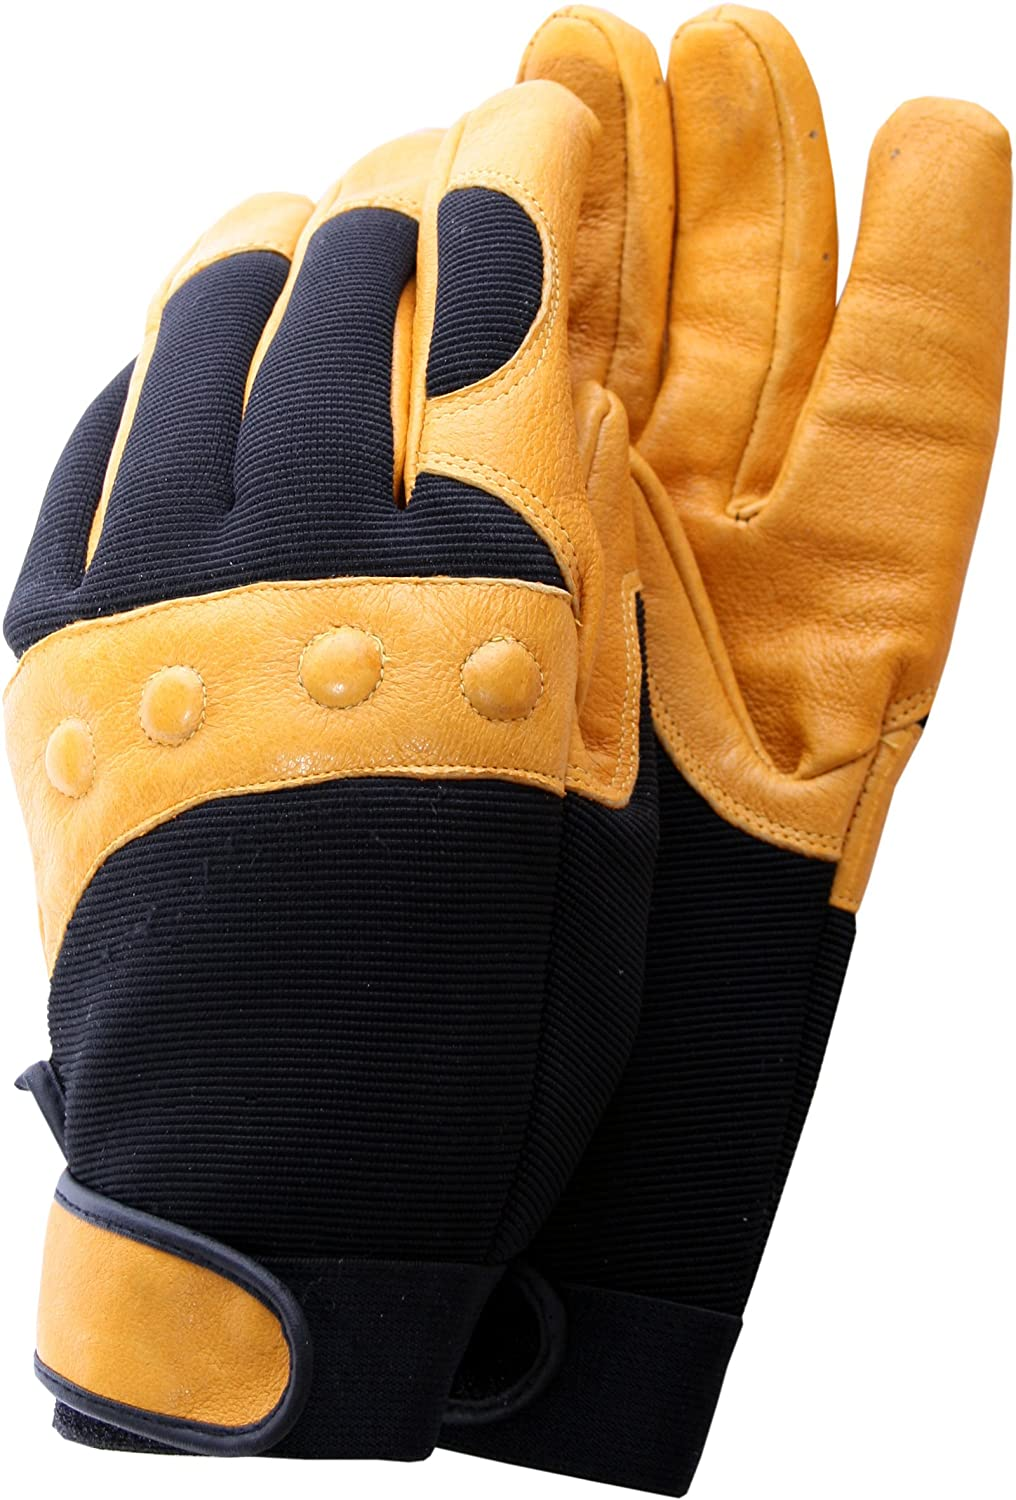 Town & Country TGL432M Deluxe Comfort Fits Mens Gloves Medium